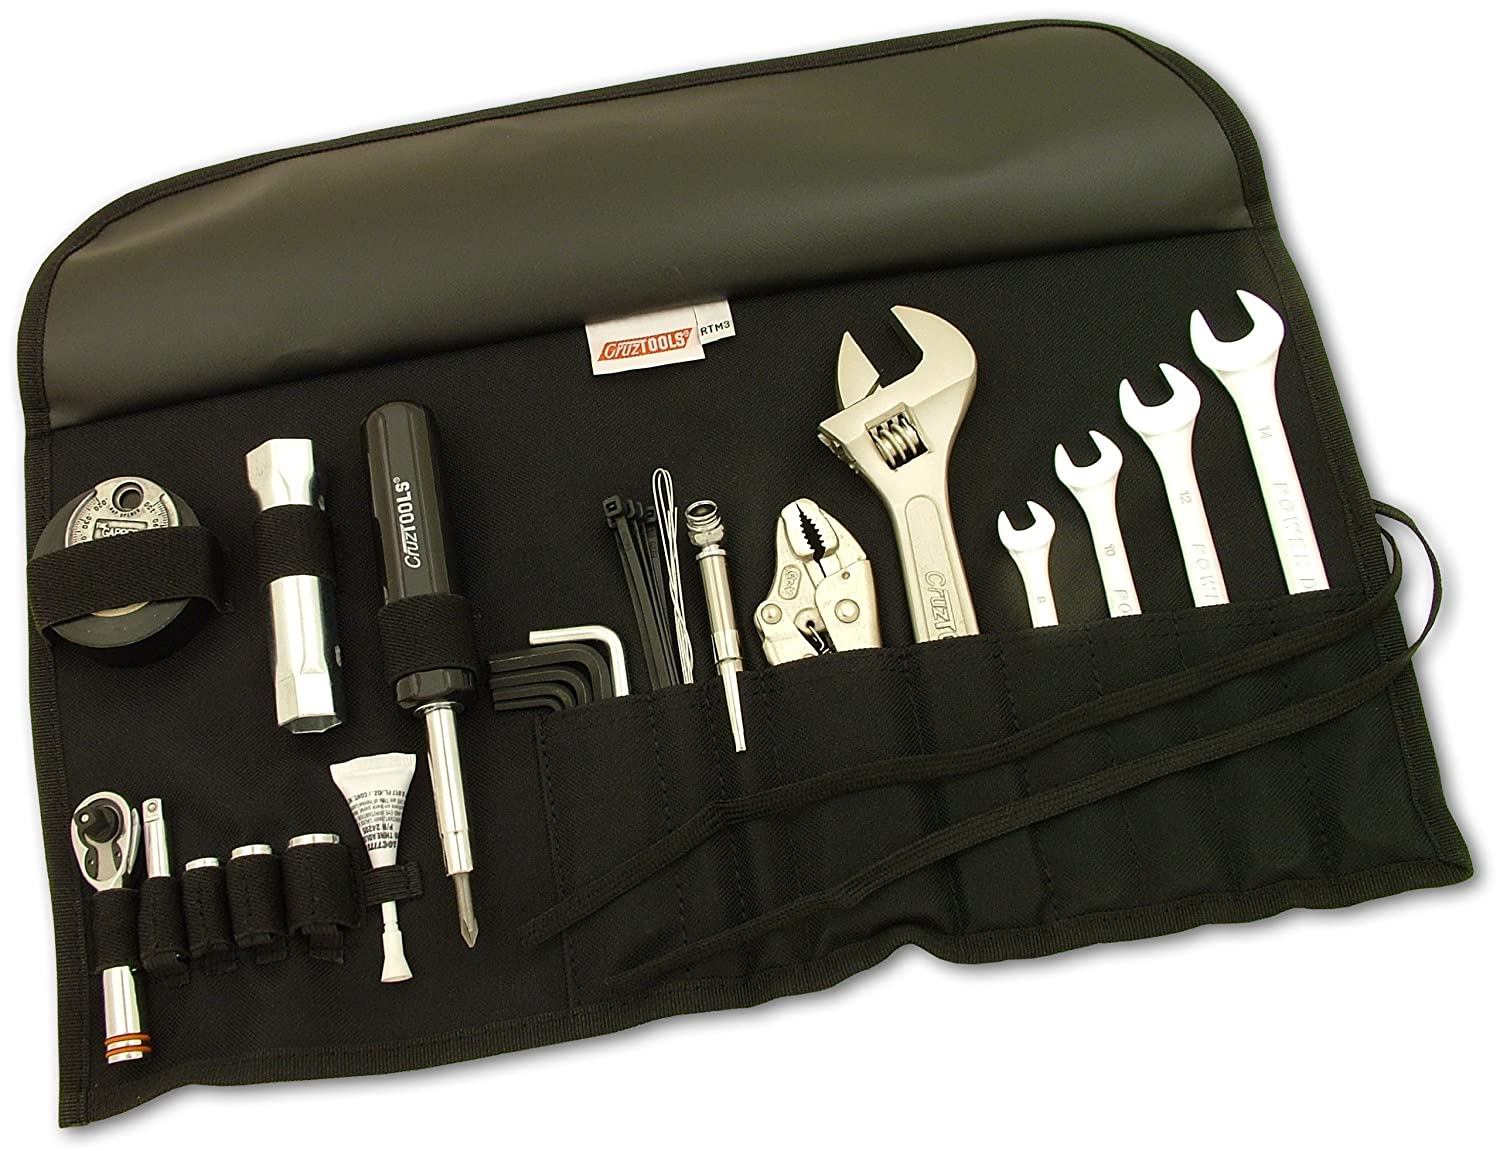 RoadTech Metric Tool Set Giveaway